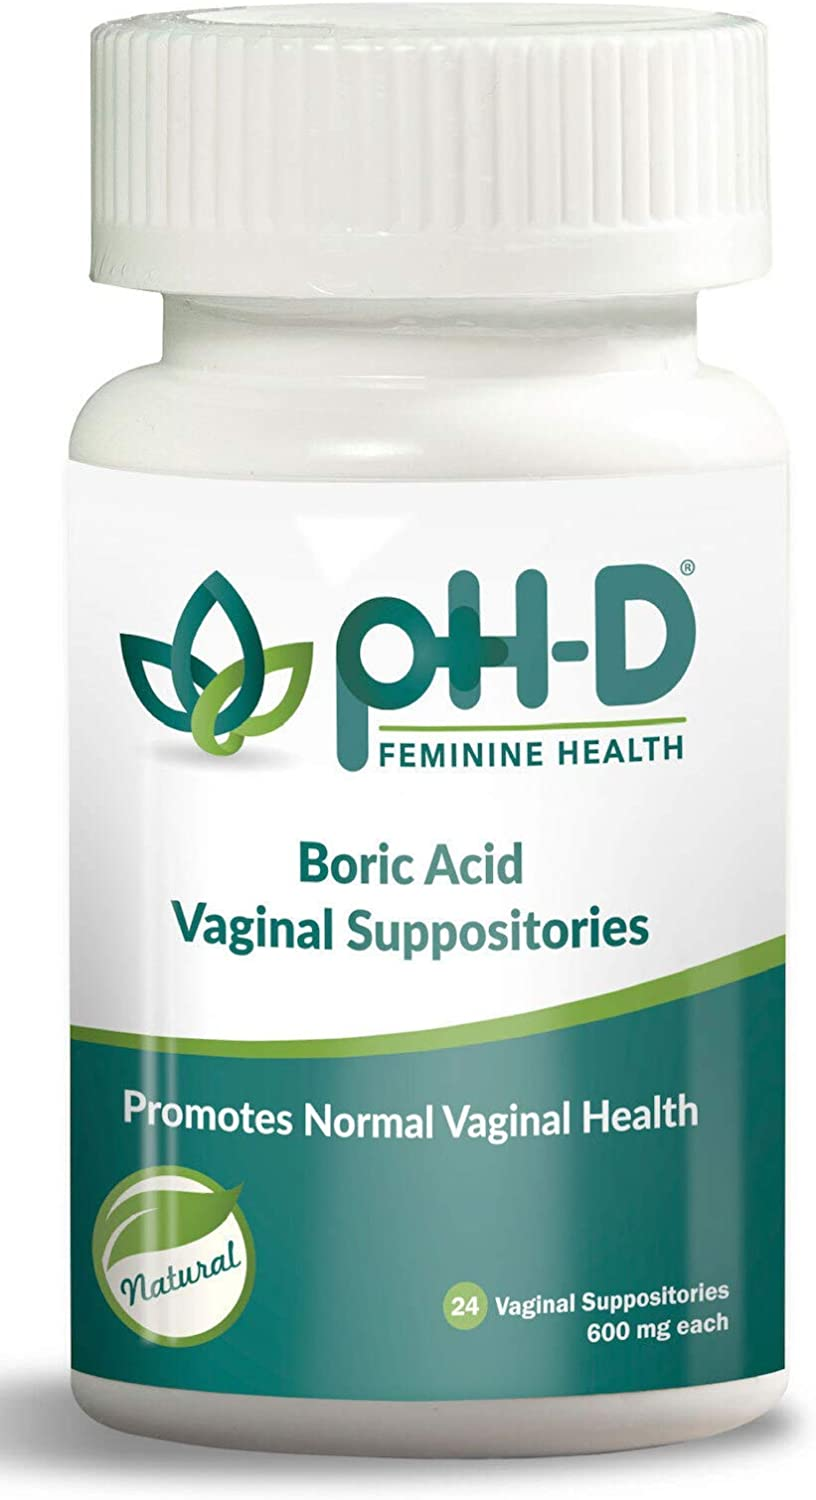 pH-D Feminine Health - 600 mg Boric Acid Suppositories - Woman Owned - Alternative Support for Vaginal Balance -24 count: Health & Personal Care